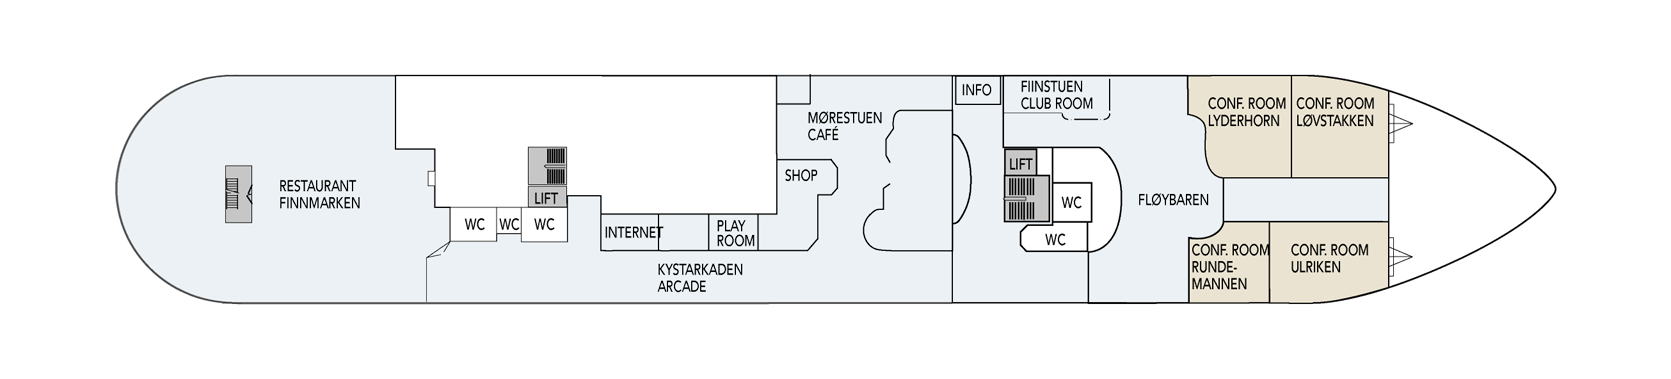 Hurtigruten MS Finnmarken Deck Plans Deck 4.png